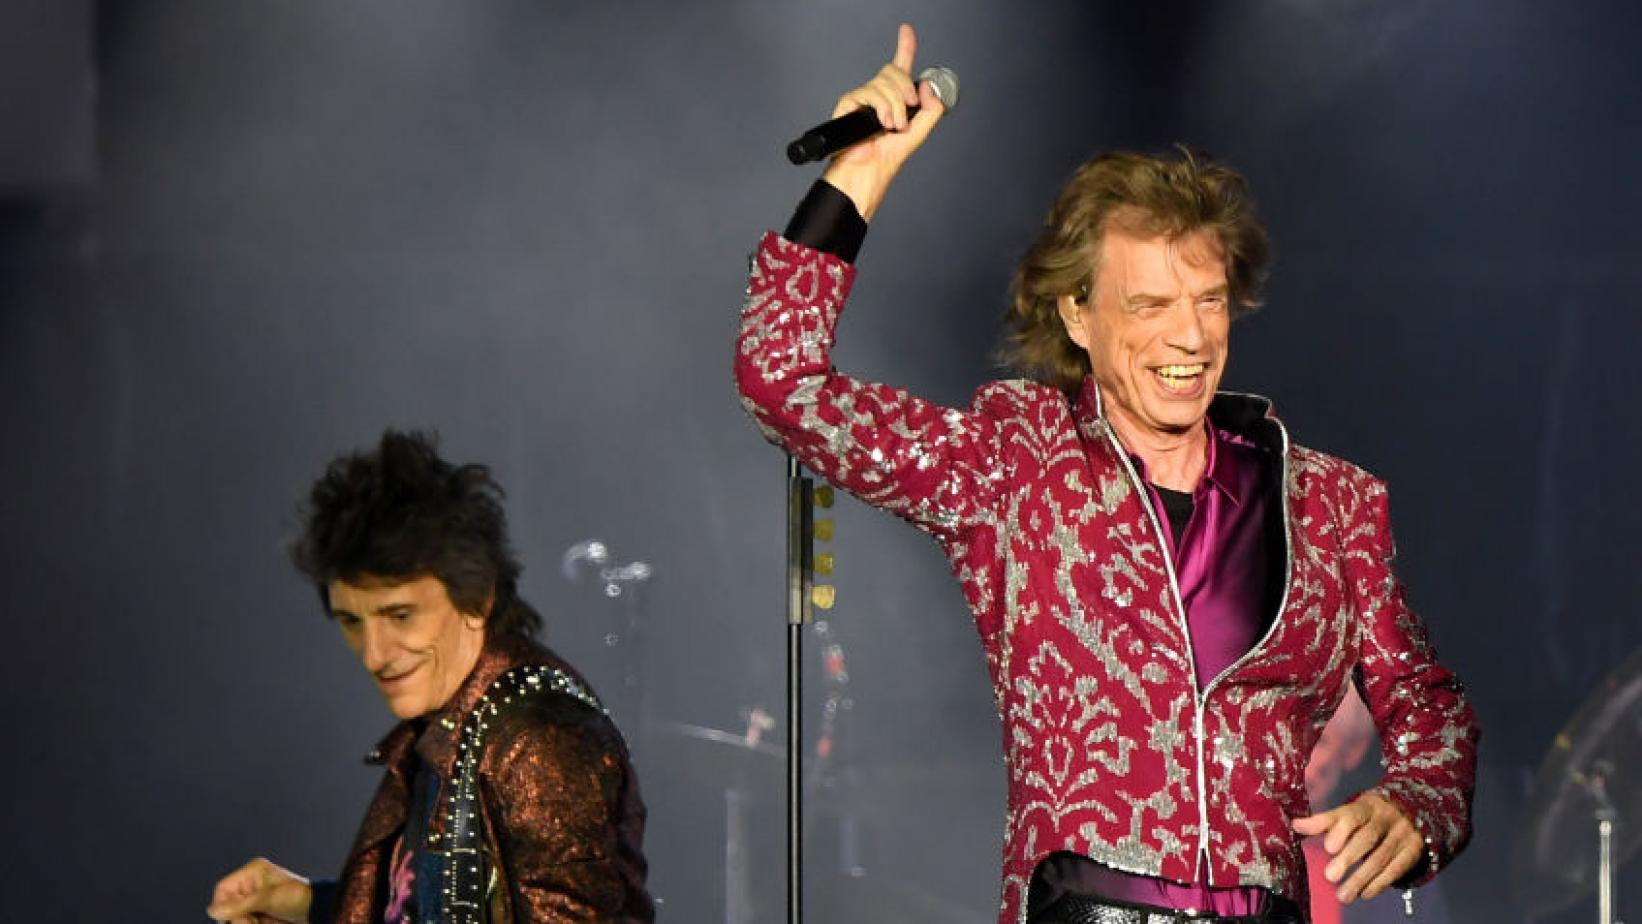 Ronnie Wood and Mick Jagger of The Rolling Stones perform in 2019